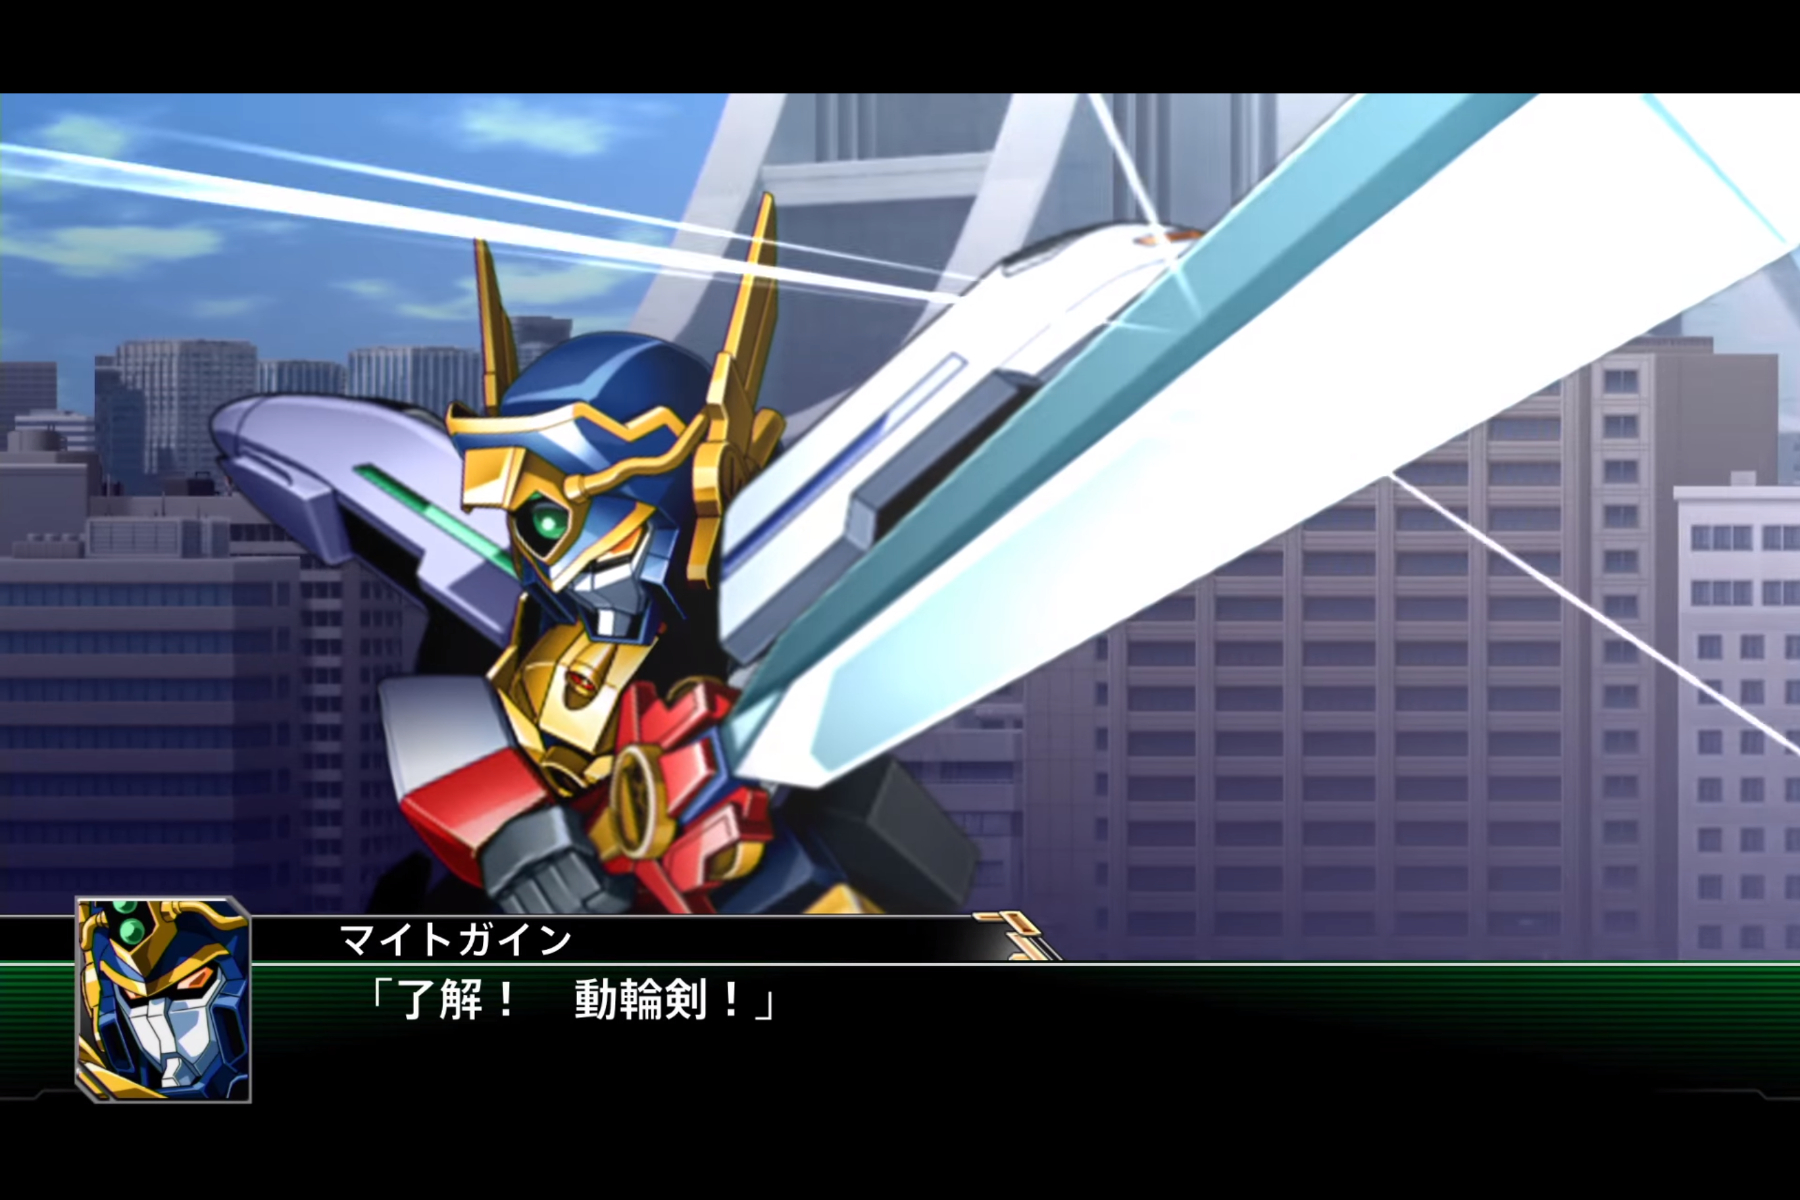 super robot wars v announced for ps4 and psvita saint. Black Bedroom Furniture Sets. Home Design Ideas